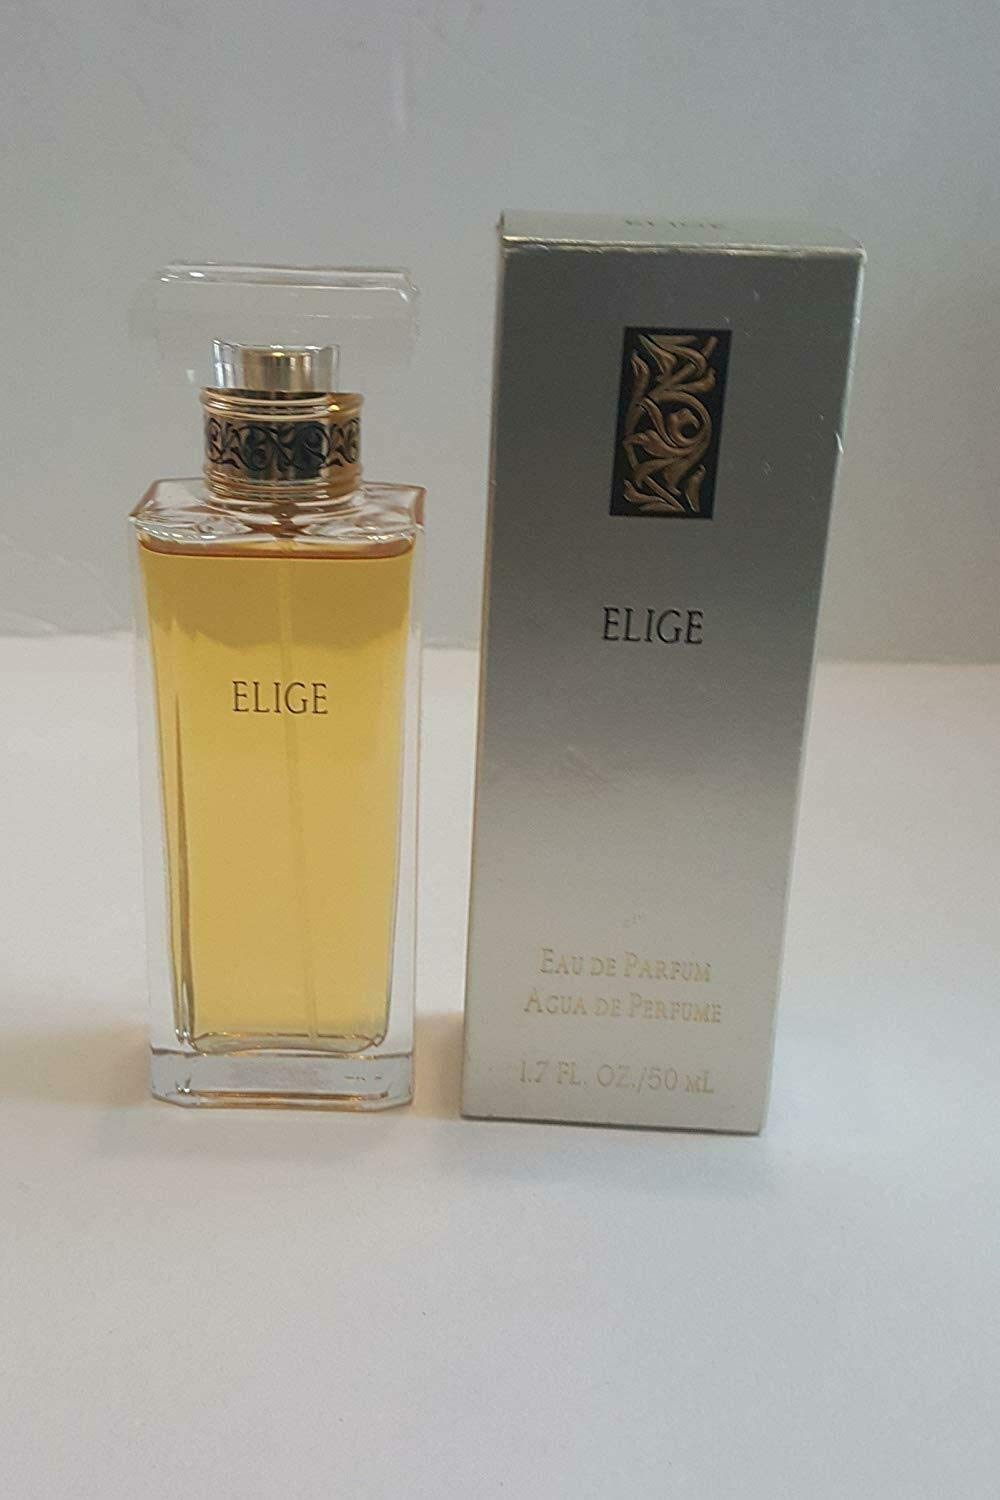 Mary KAY Elige Perfume for Women - Full Size - New Boxed Discounted Expire 2015